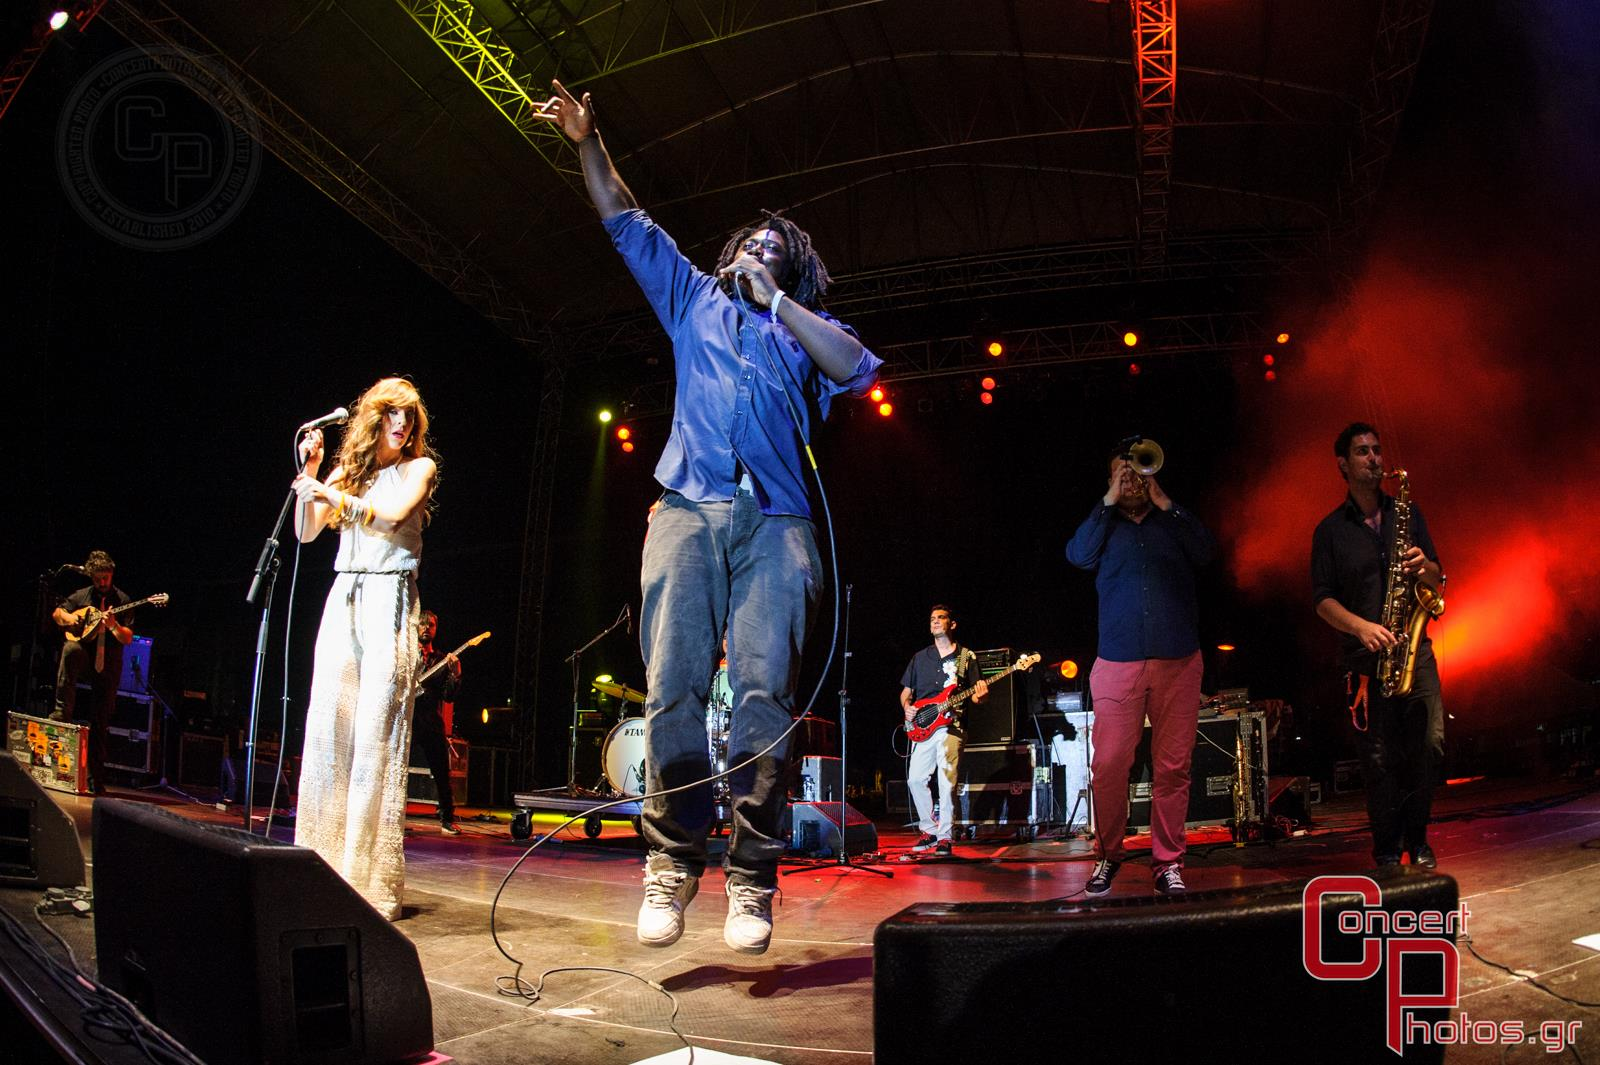 Thievery Corporation Imam Baildi Boogie Belgique Penny And The Swingin' Cats-Thievery Corporation Imam Baildi Boogie Belgique Penny And The Swingin' Cats photographer:  - concertphotos_20140617_21_56_49